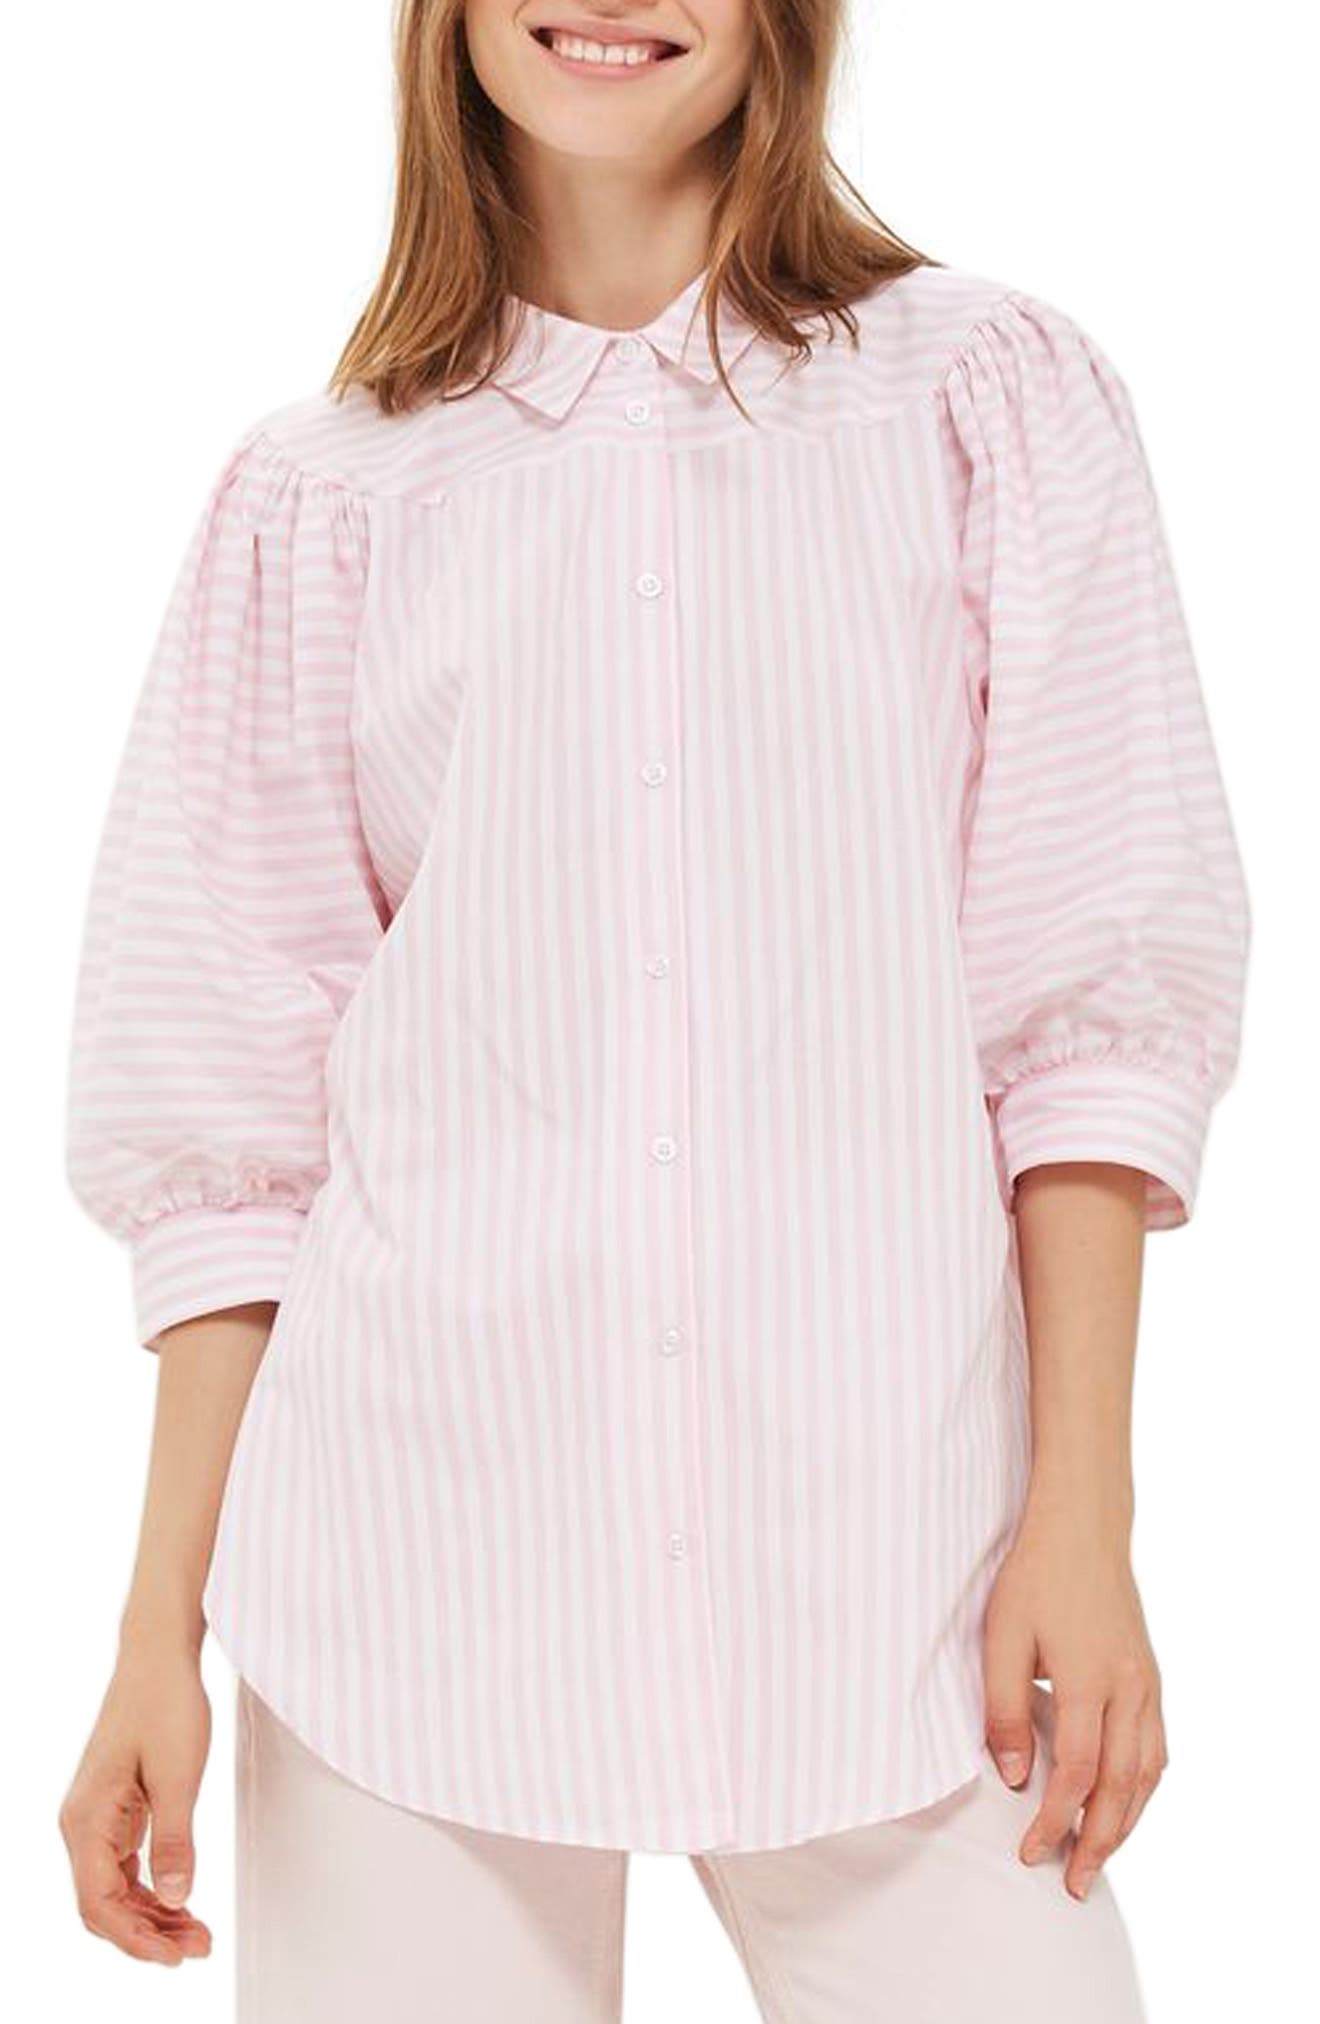 Topshop Stripe Puff Sleeve Shirt